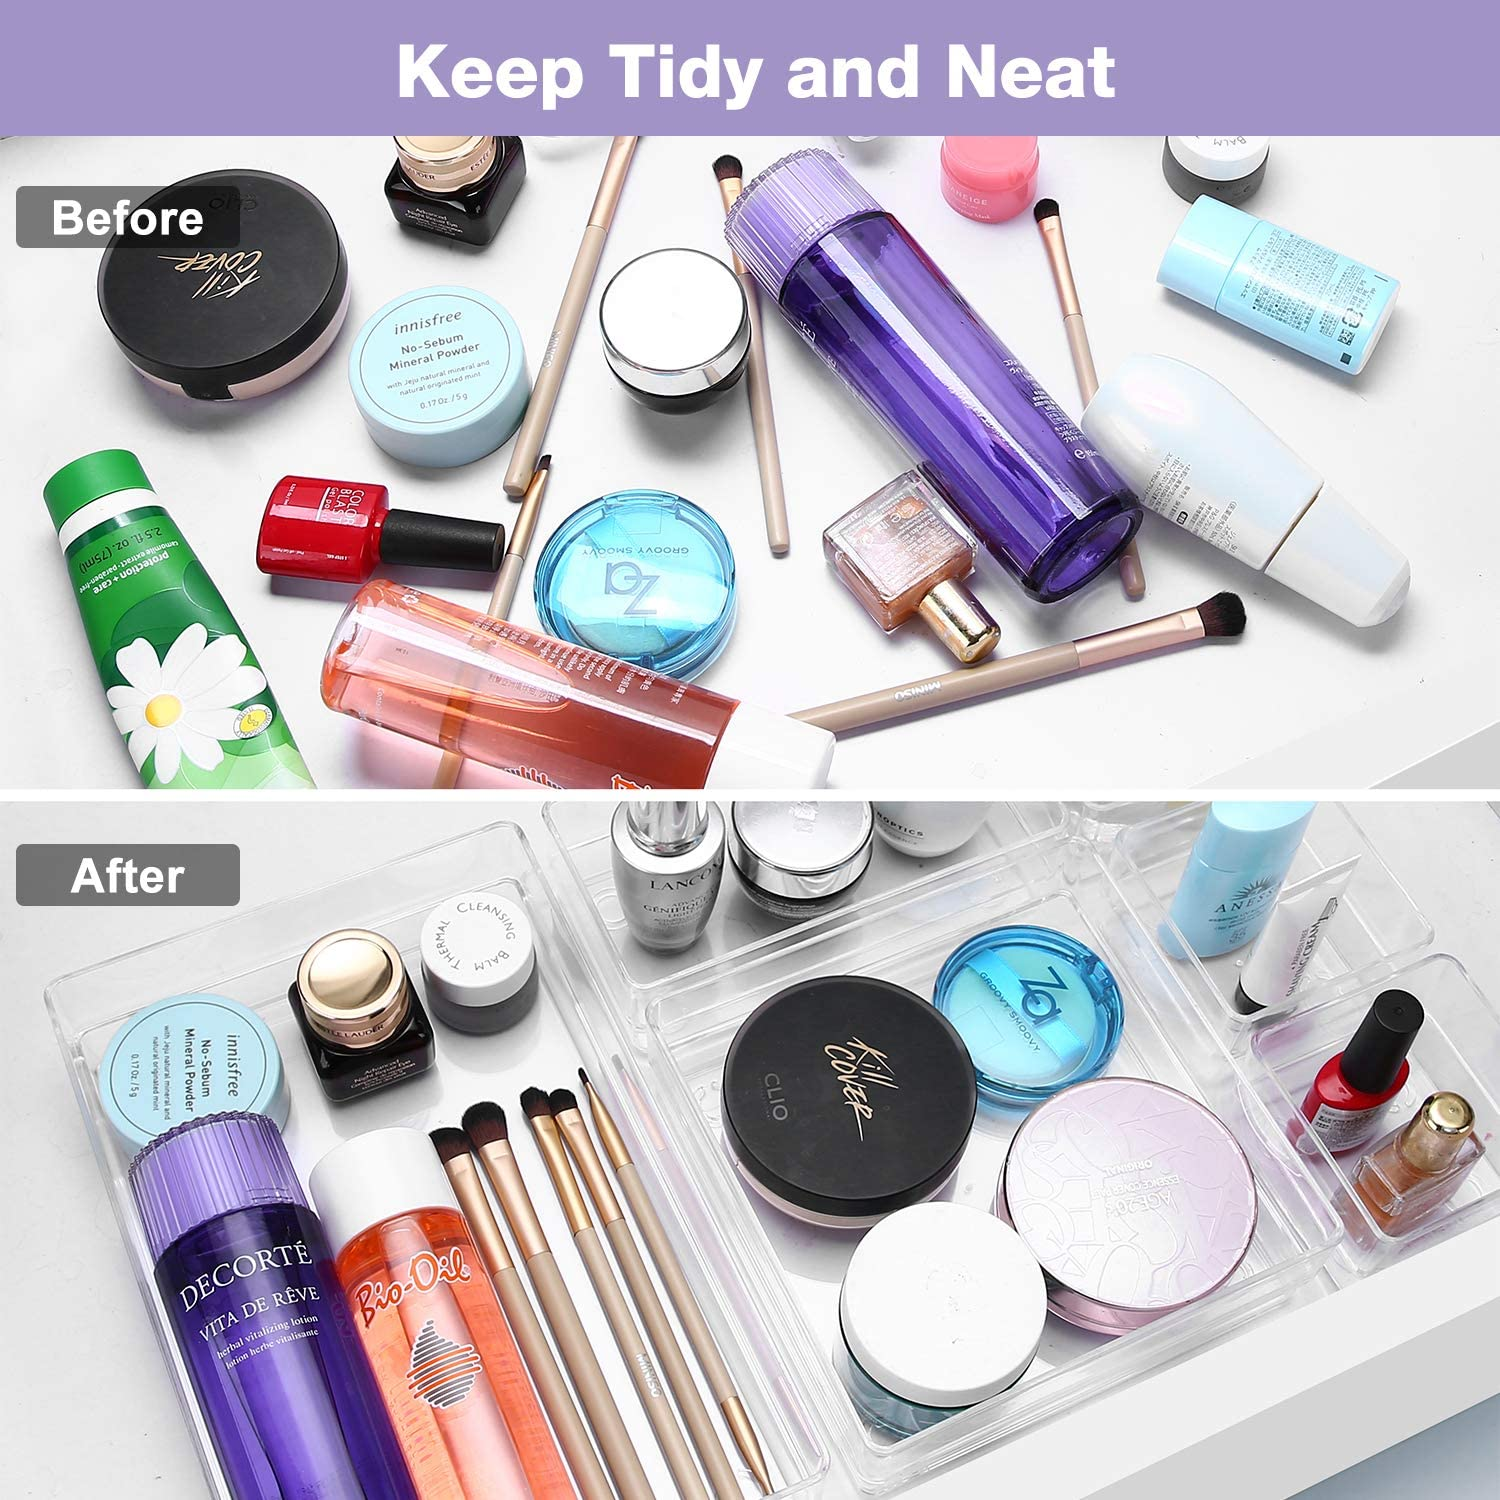 Clear Plastic Storage Bins Drawer Dividers Vanity Tray Organizer for Makeup Bedroom Dresser Bathroom Kitchen Office Puricon Desk Drawer Organizers Tray Set 10 Pcs Clear